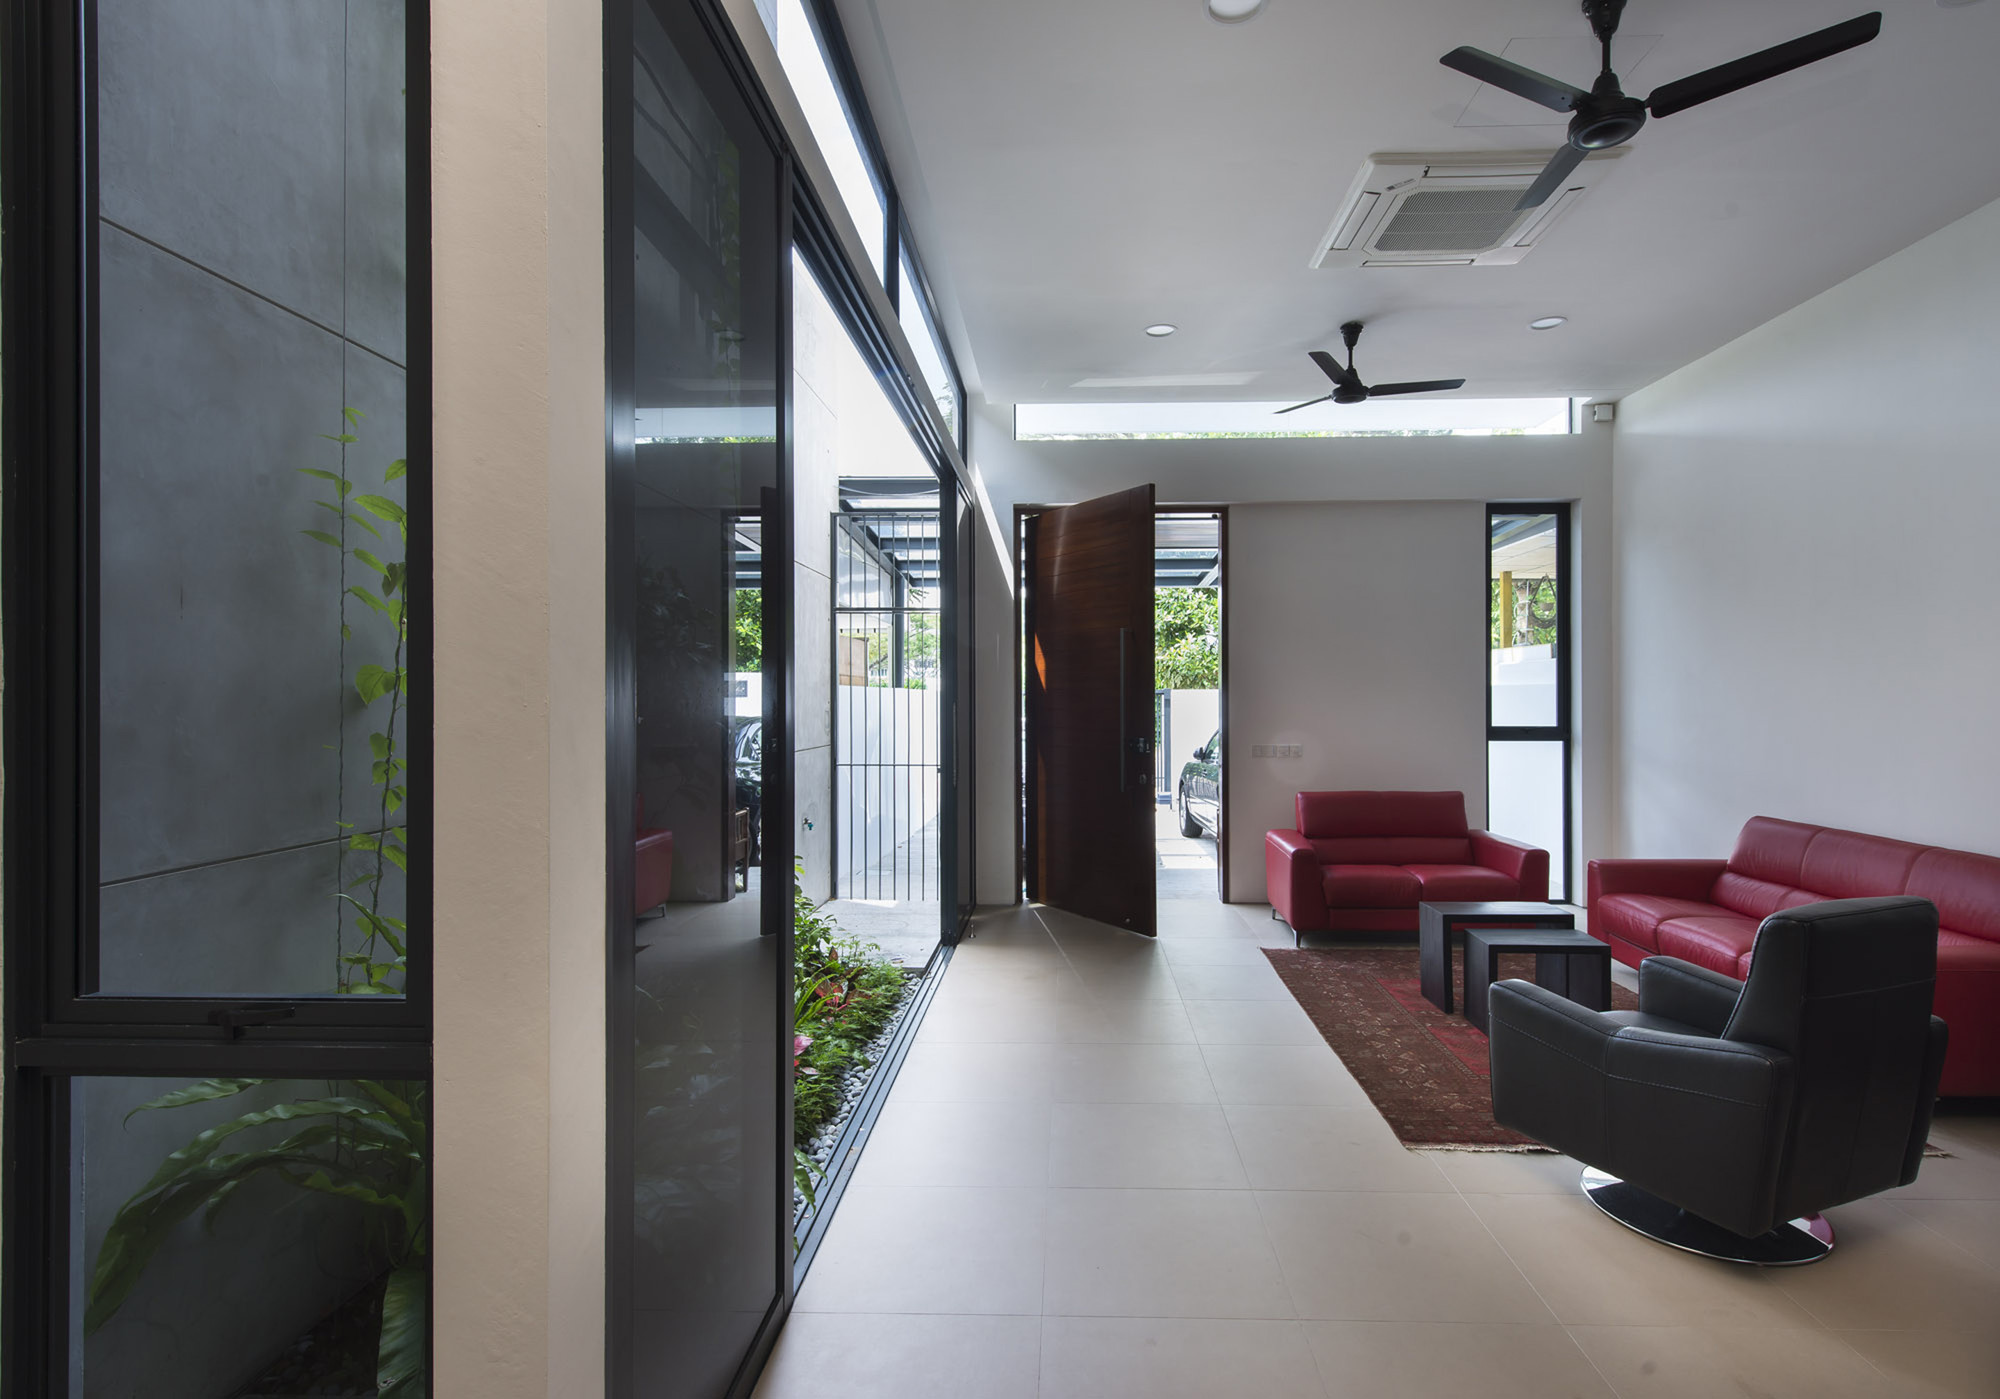 Airwell house adx architects archdaily - Jardineras modernas ...